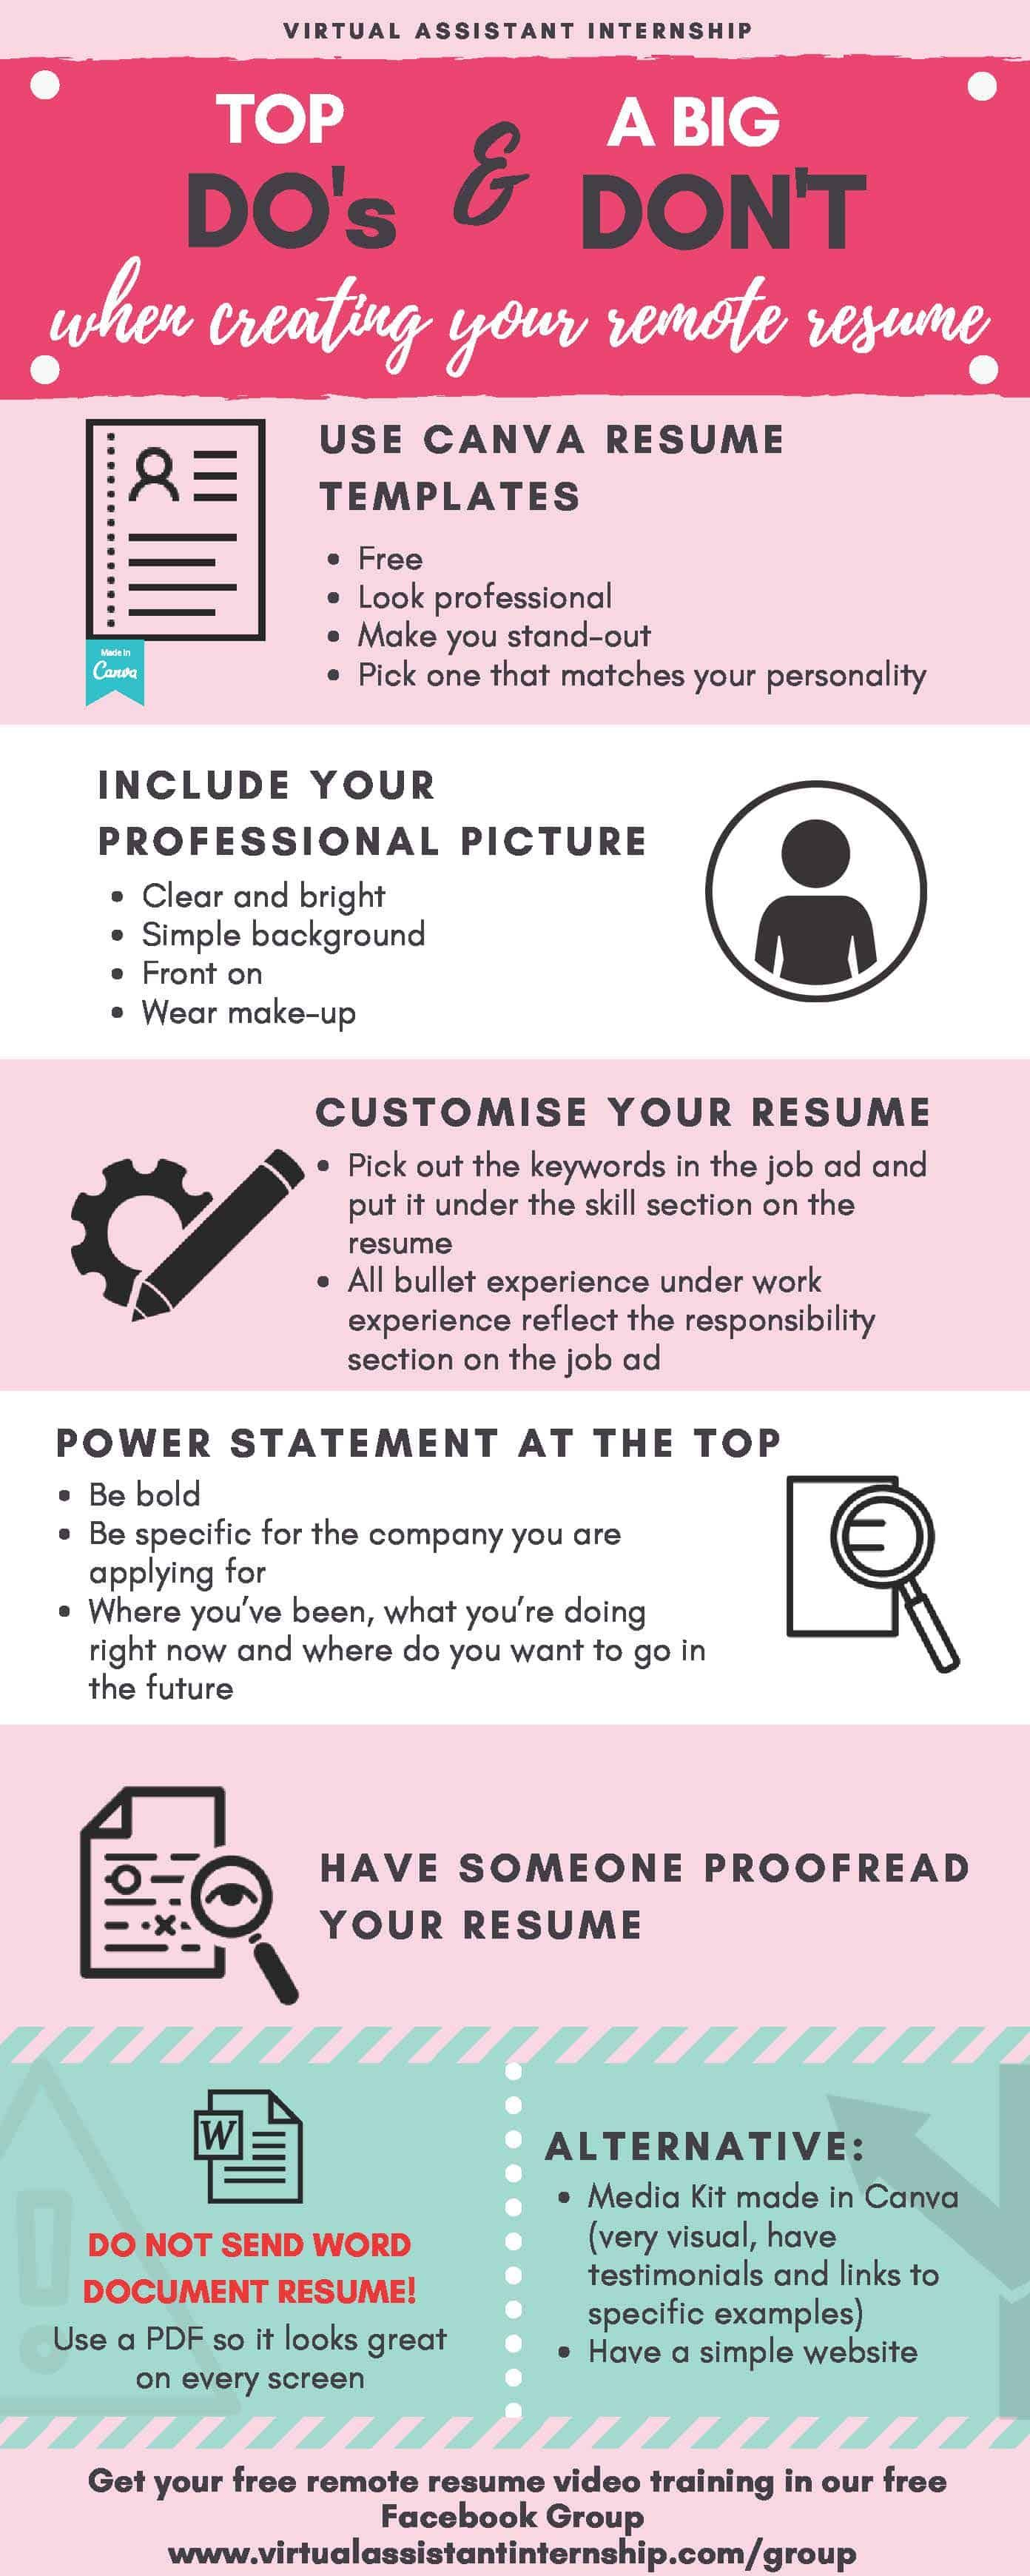 How to stand out amongst the competition when applying for